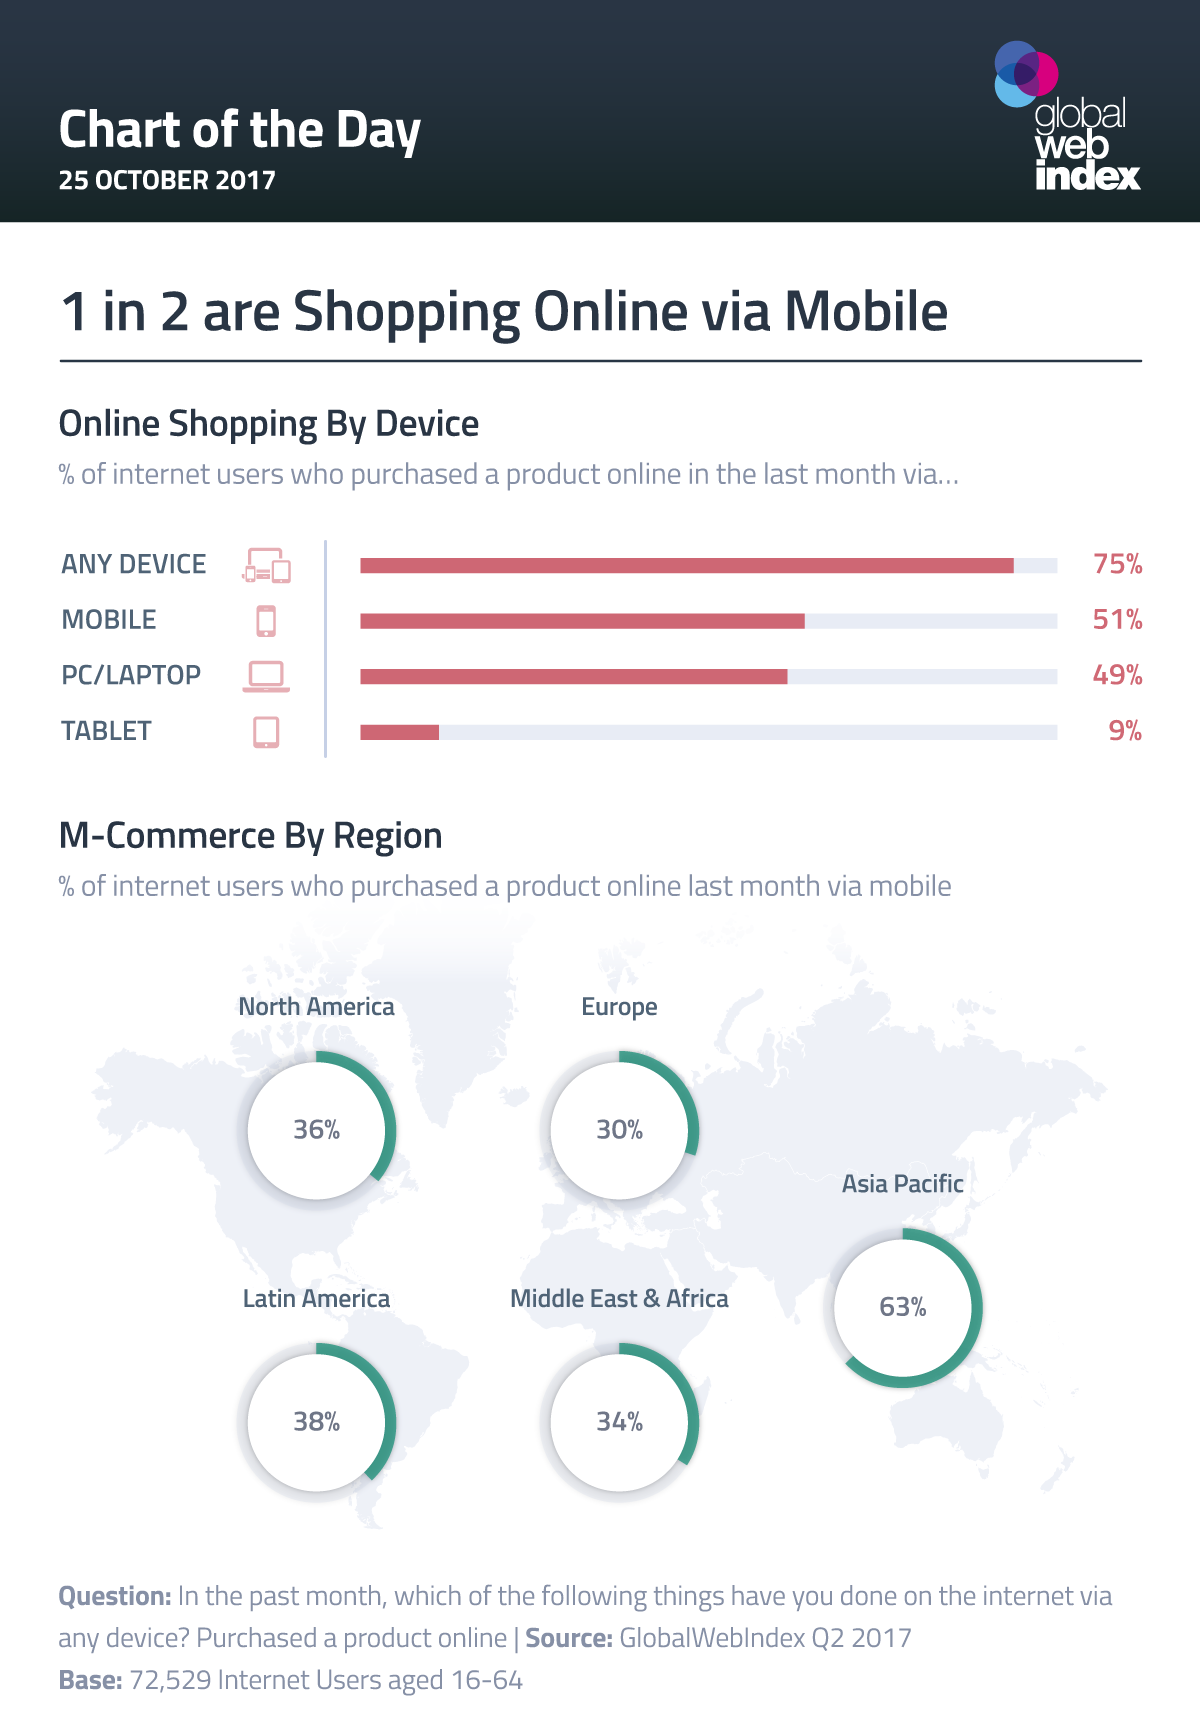 Buying Online is Now Mobile-First